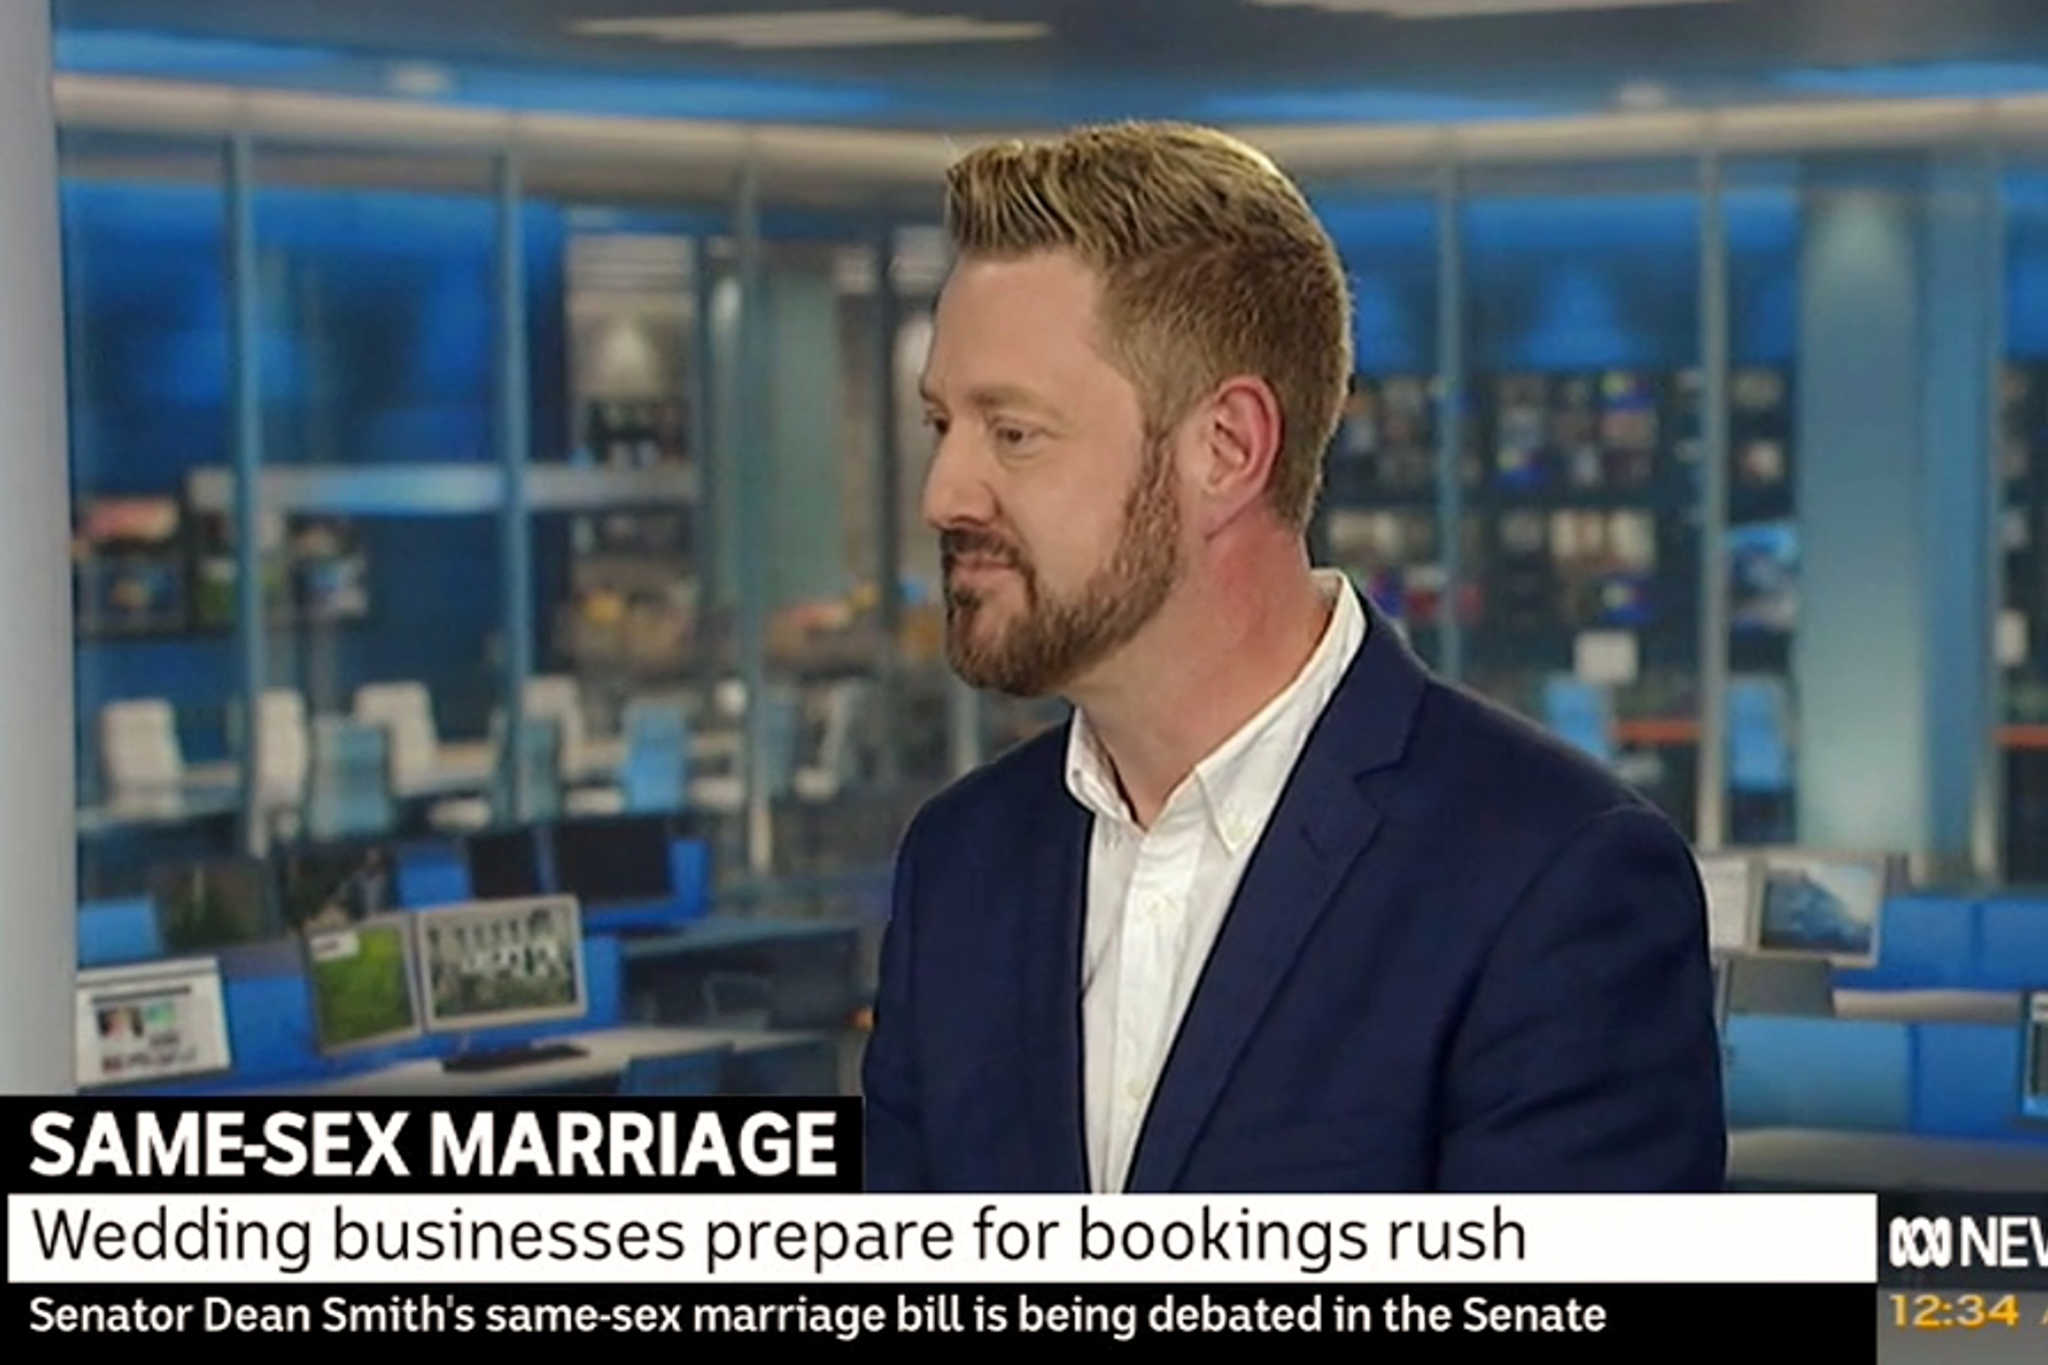 Stephen Lee Sydney Marriage Celebrant on ABC News